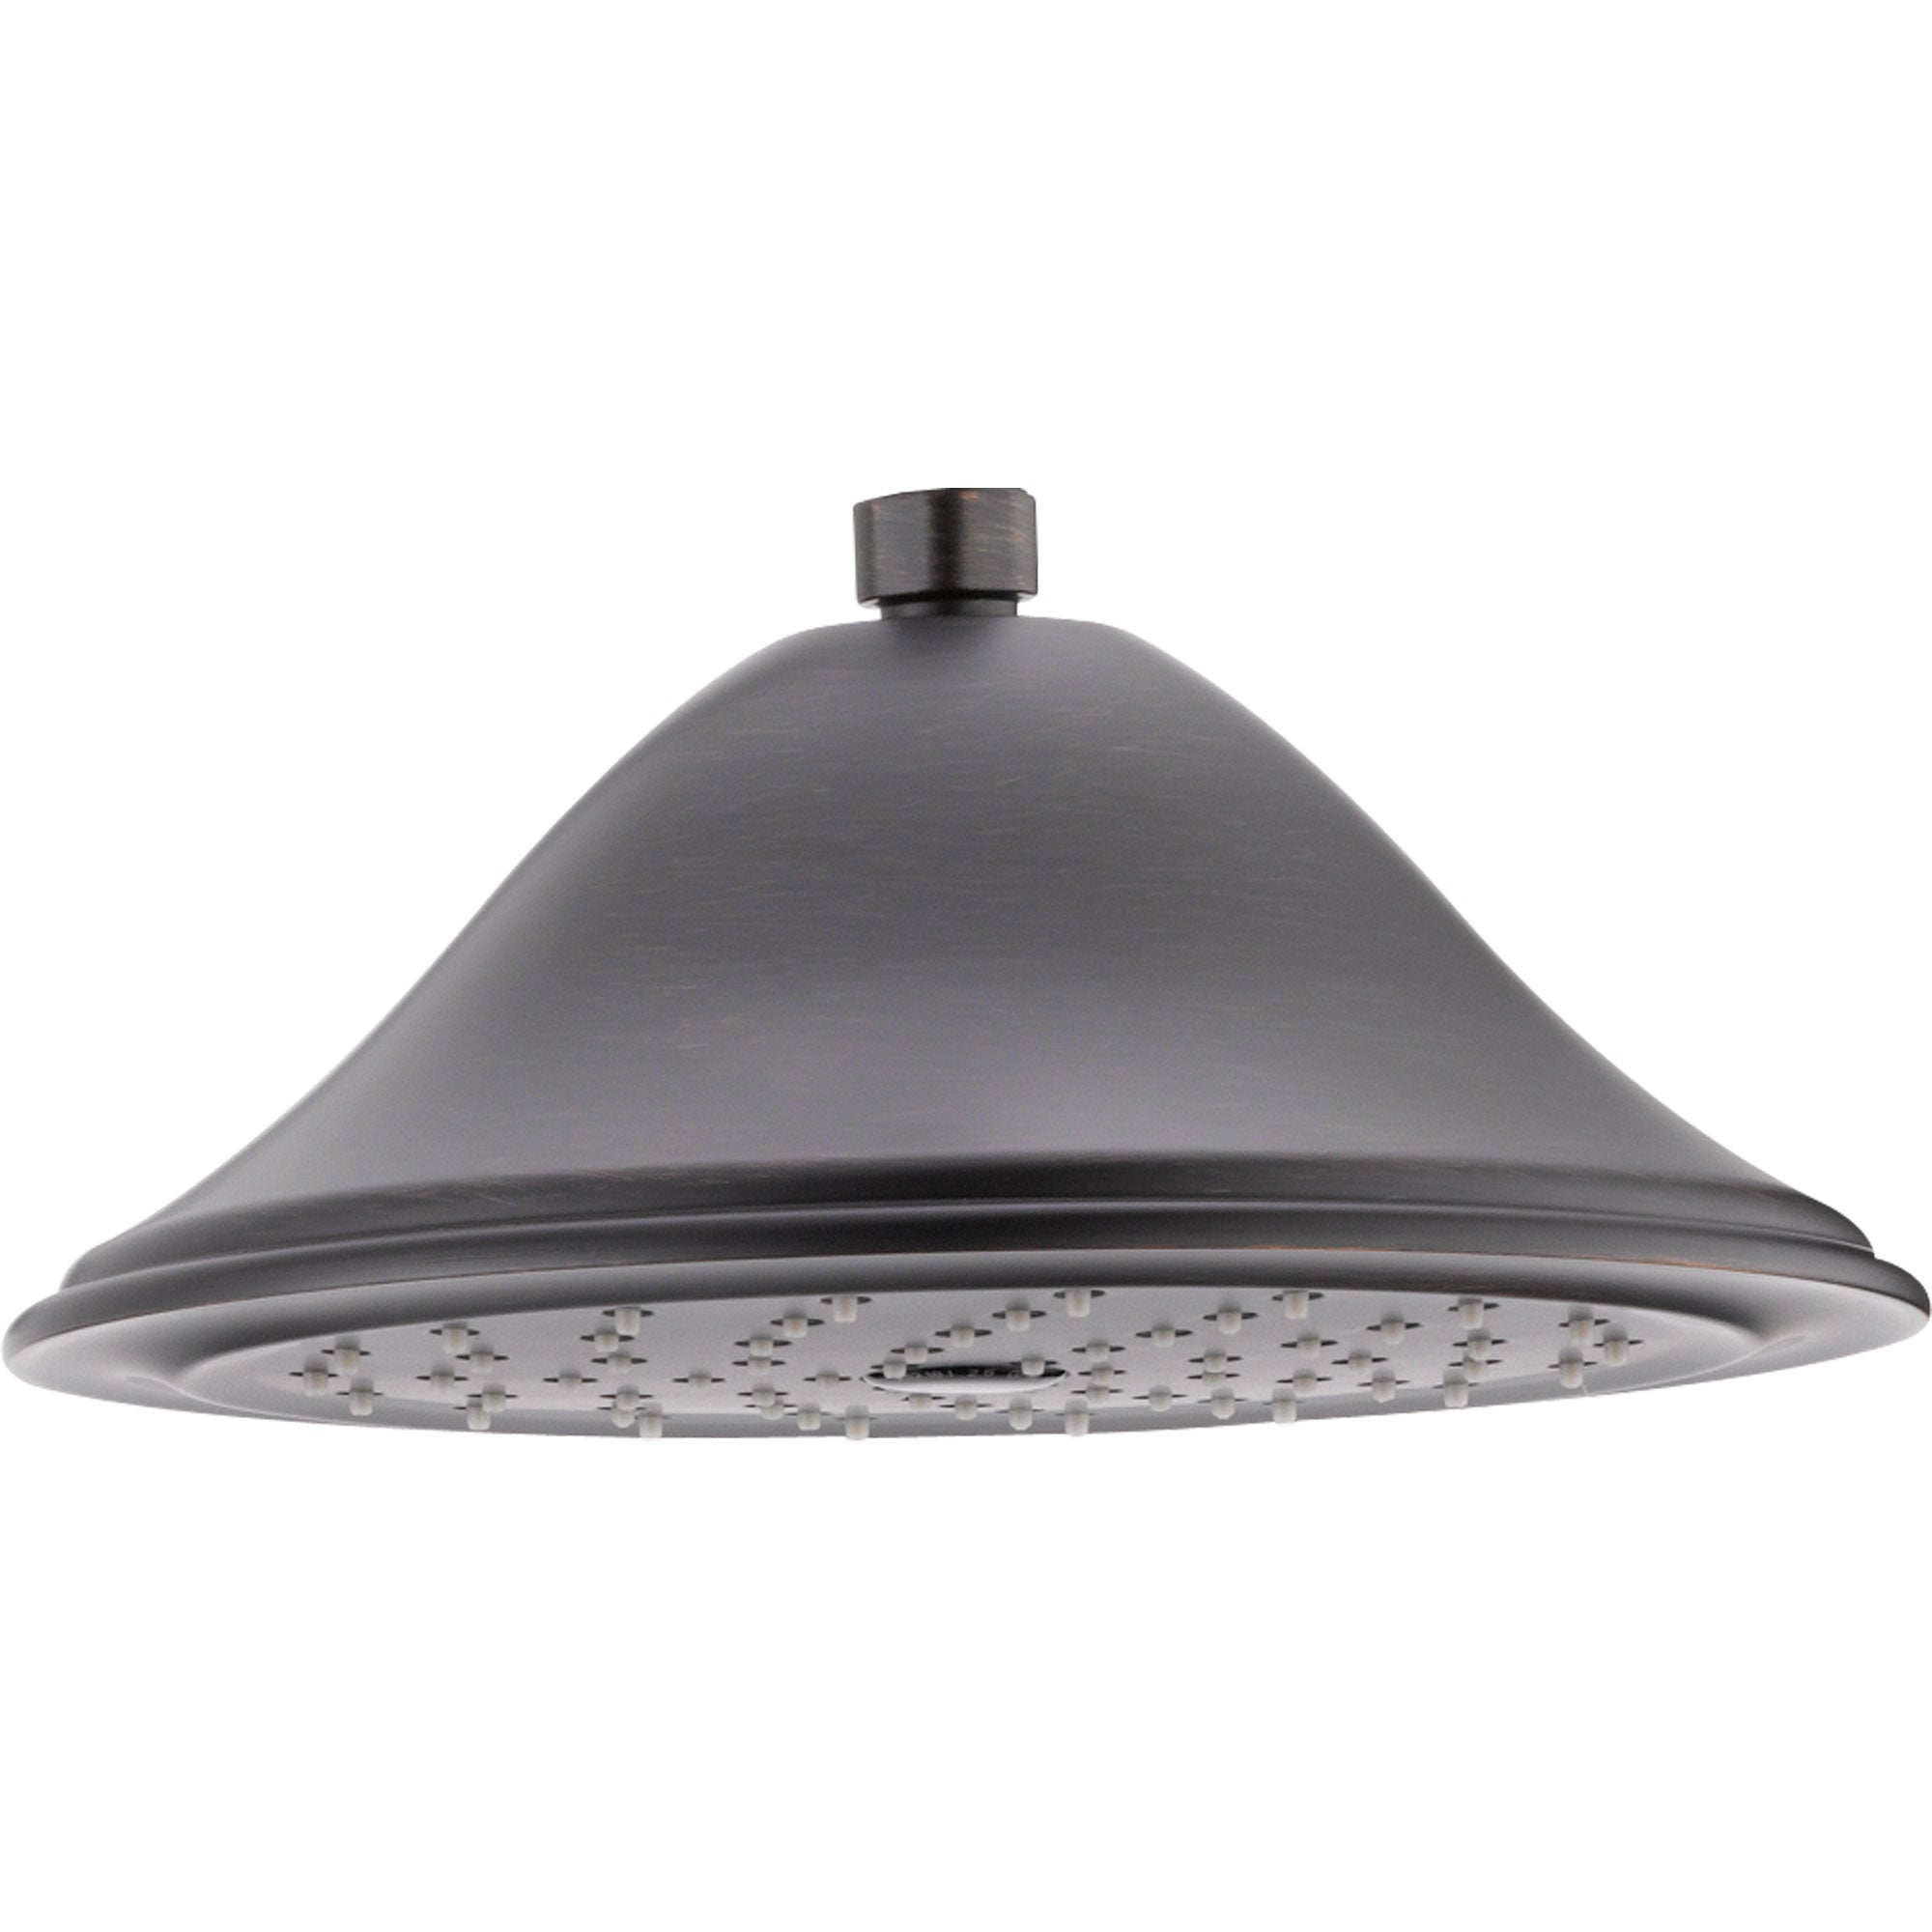 Delta 1 Spray 9 3 8 Inch Venetian Bronze Finish Large Rain Showerhead 584306